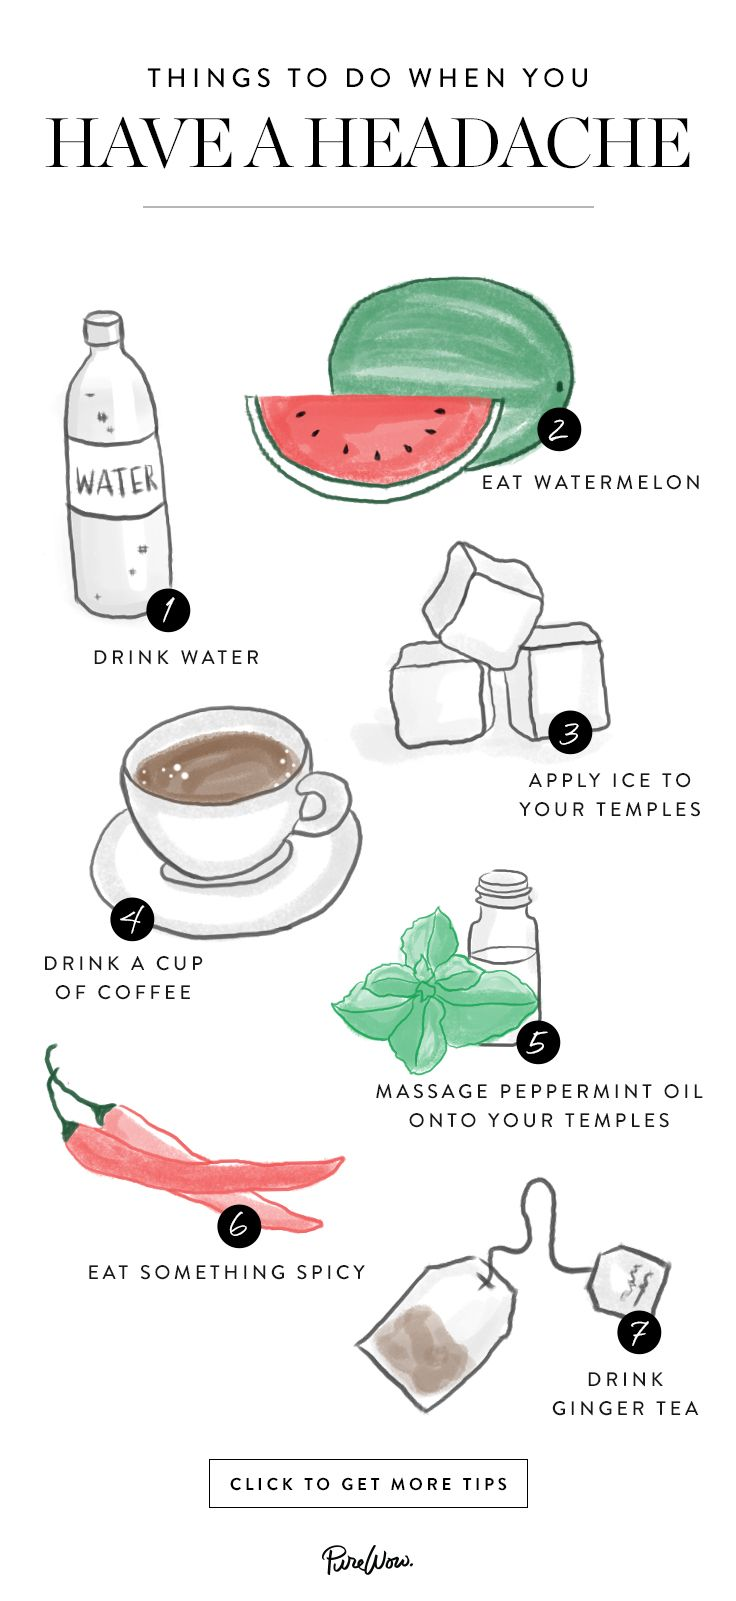 Things To Do When You Have a Headache | Natural Pain Relief | Health and Wellness Tips |